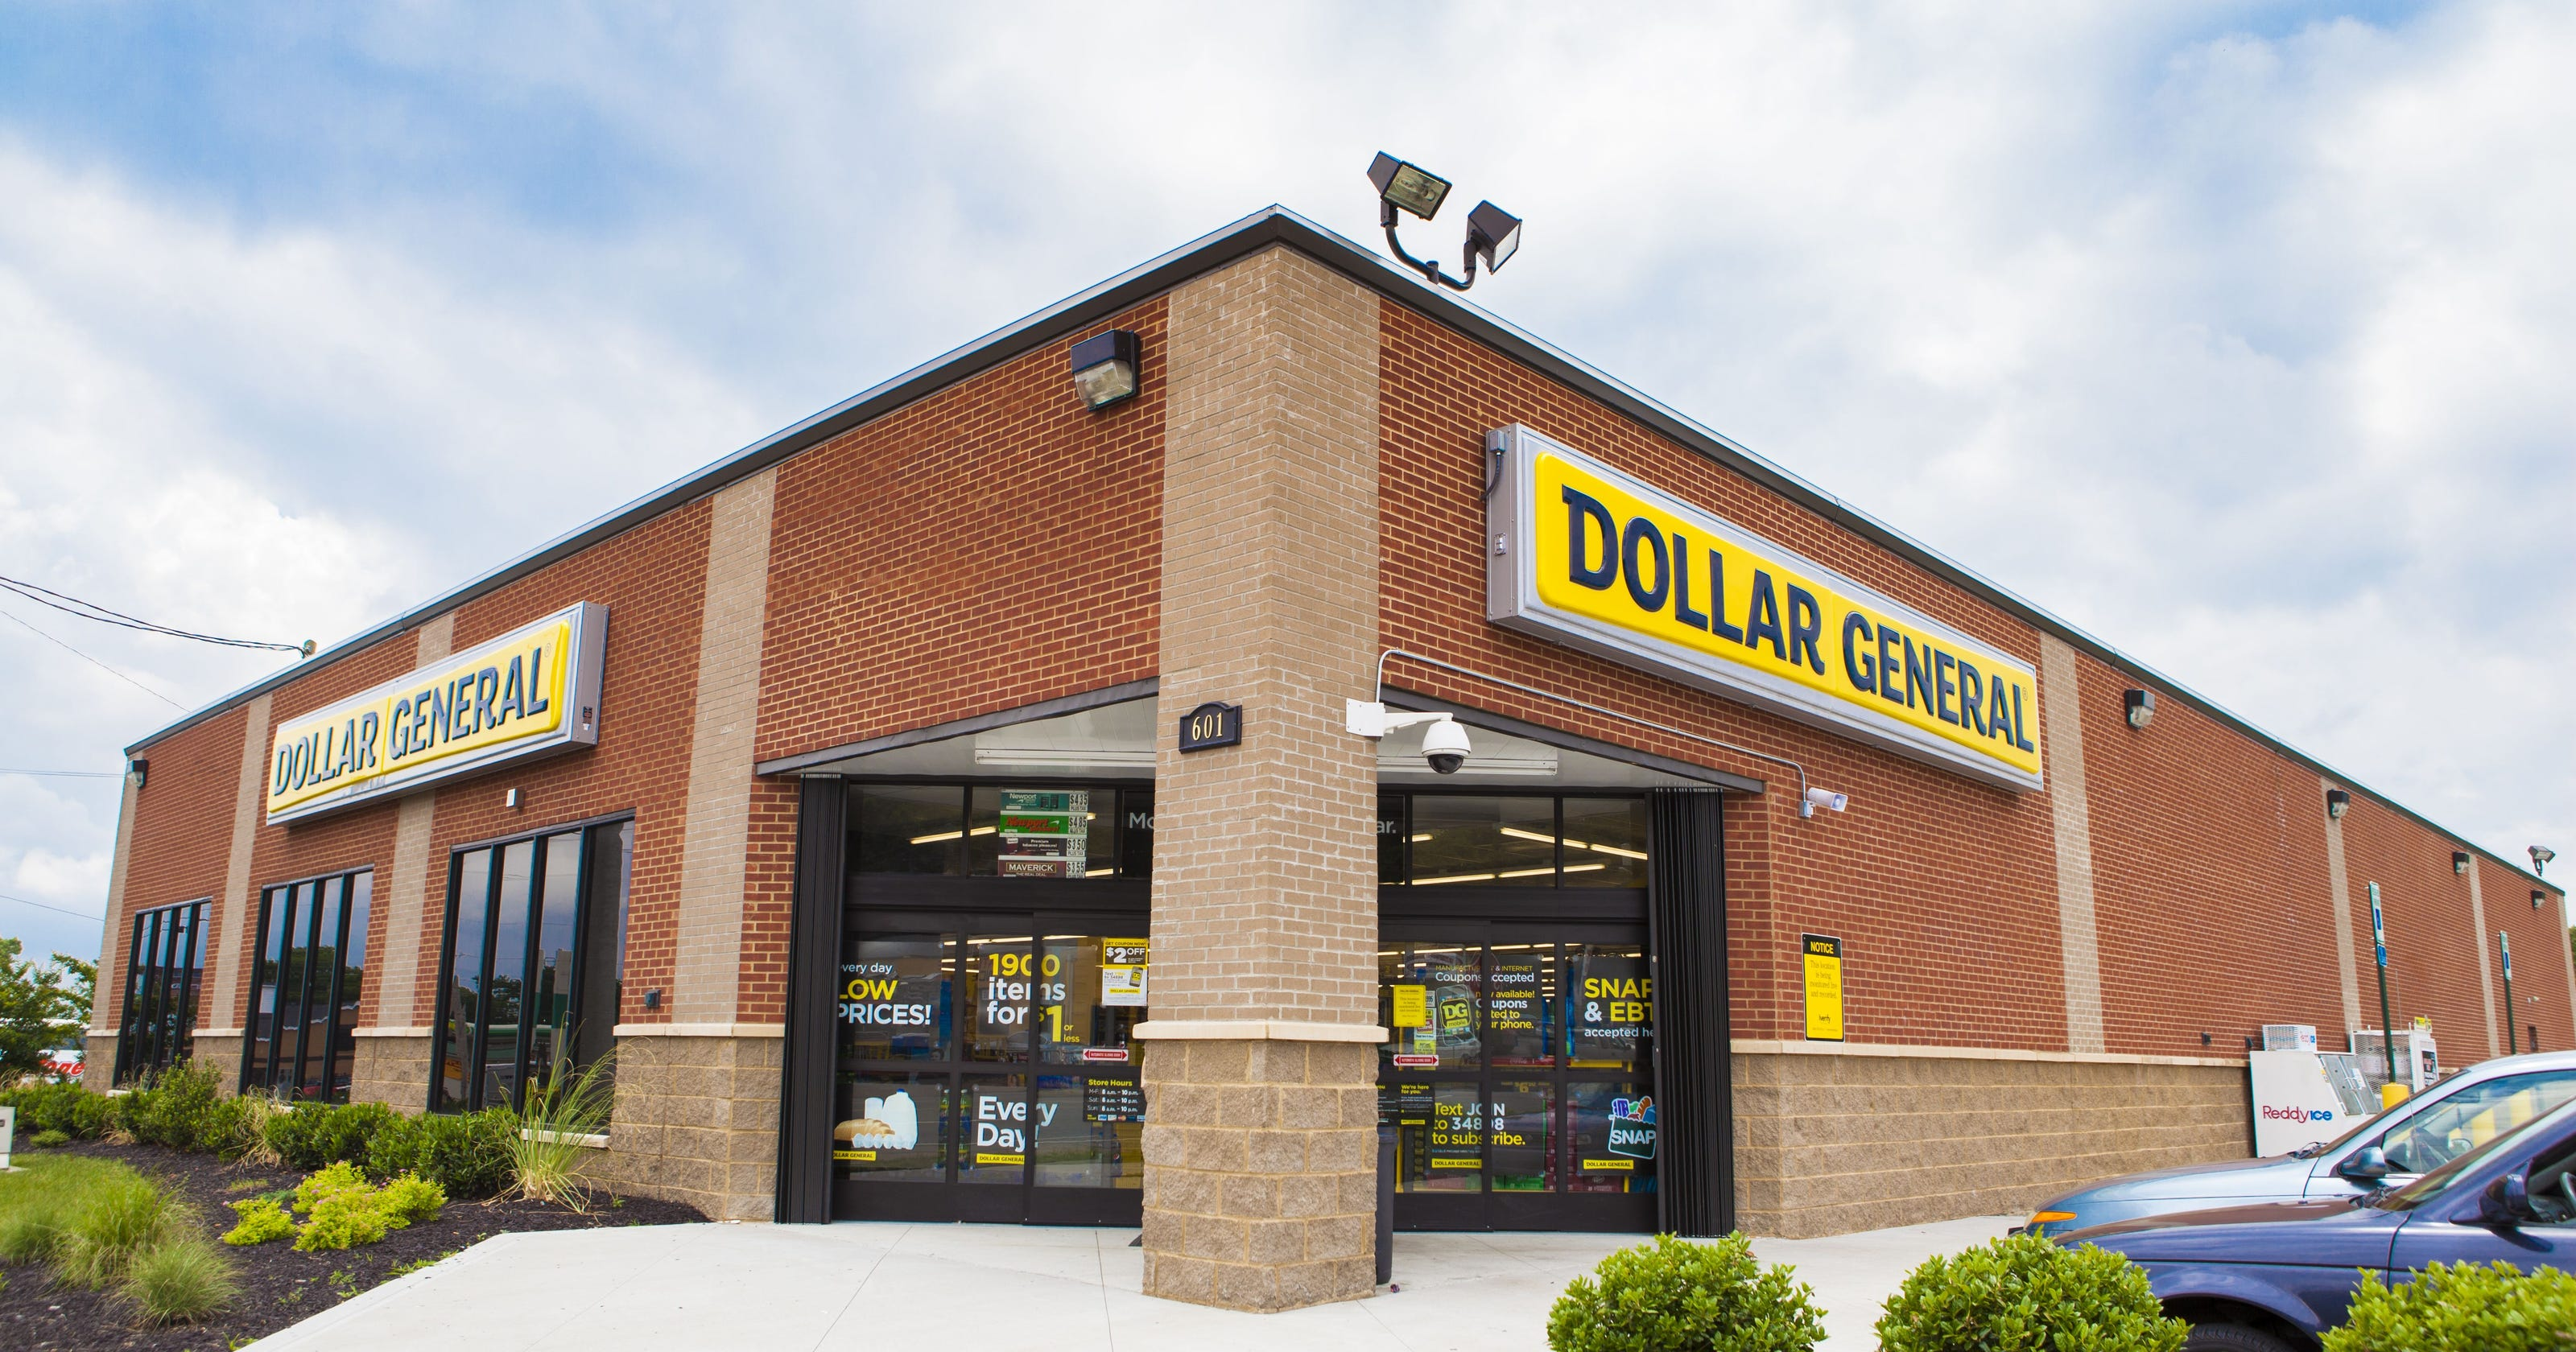 Corner entrance view of a Dollar General store.